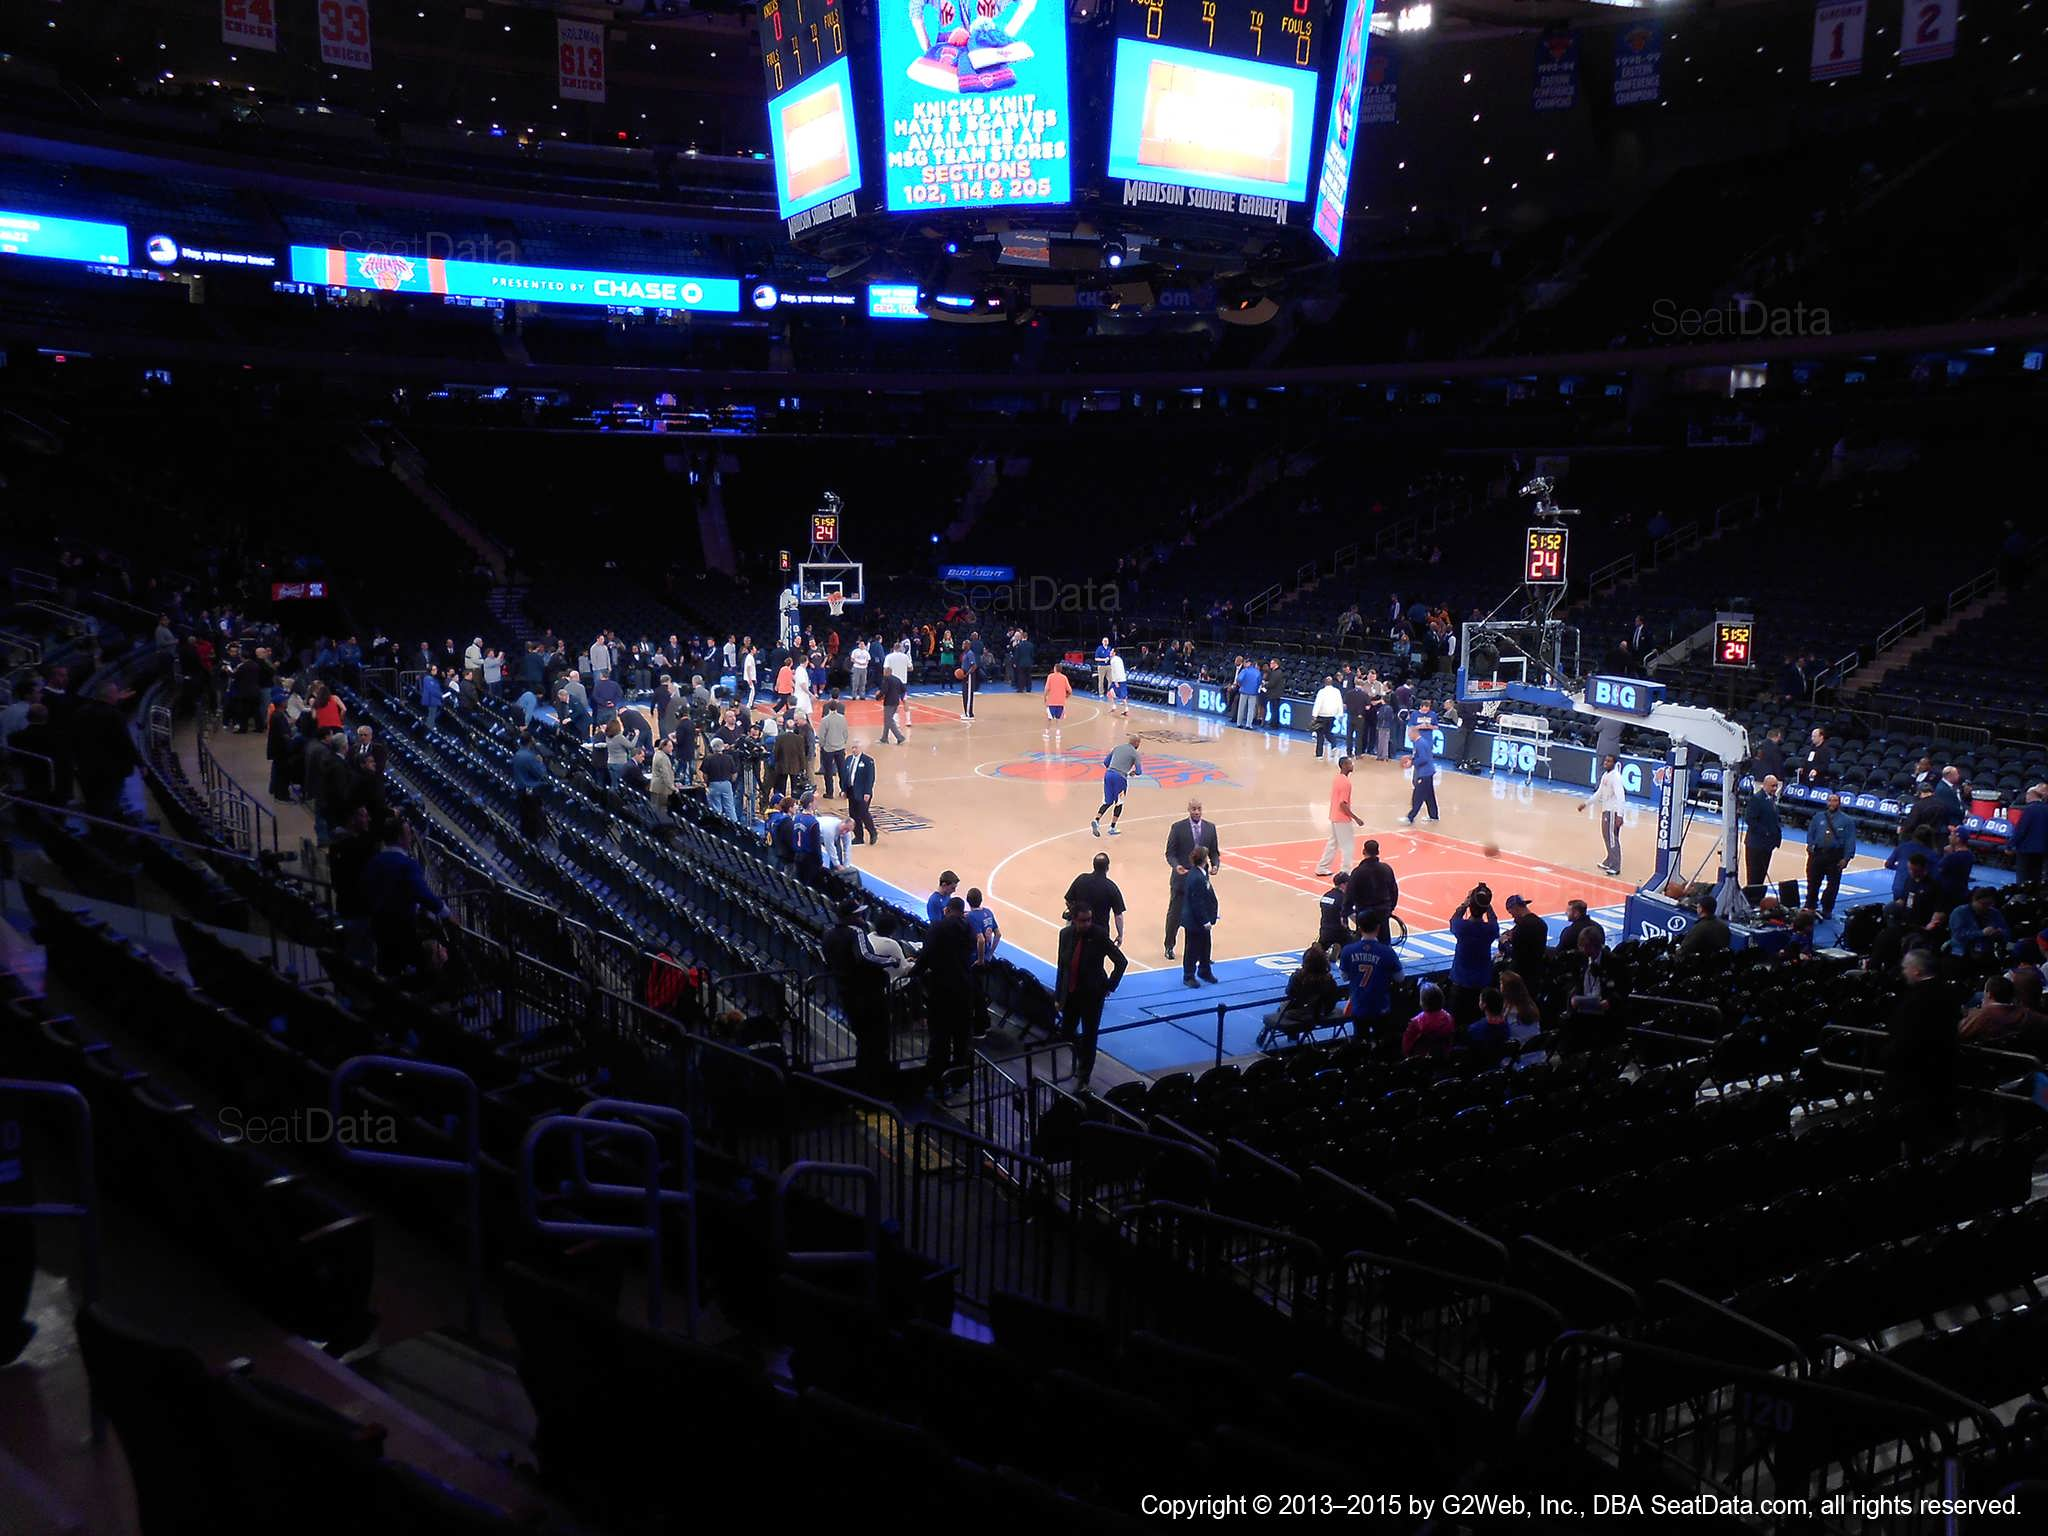 Seat view from section 120 at Madison Square Garden, home of the New York Knicks.